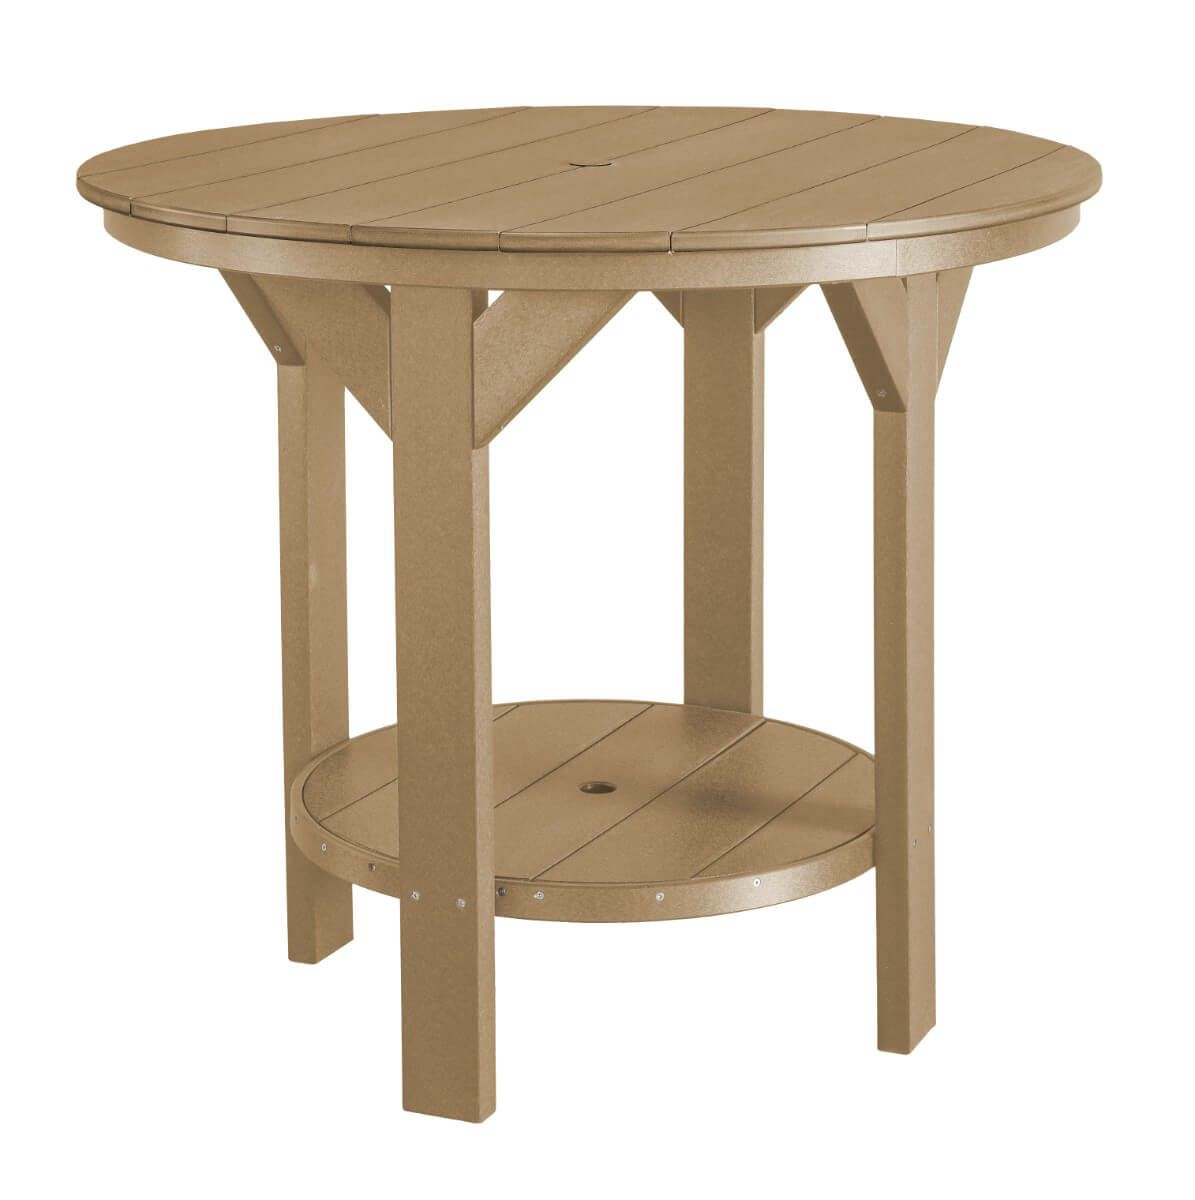 Weathered Wood Sidra Outdoor Pub Table